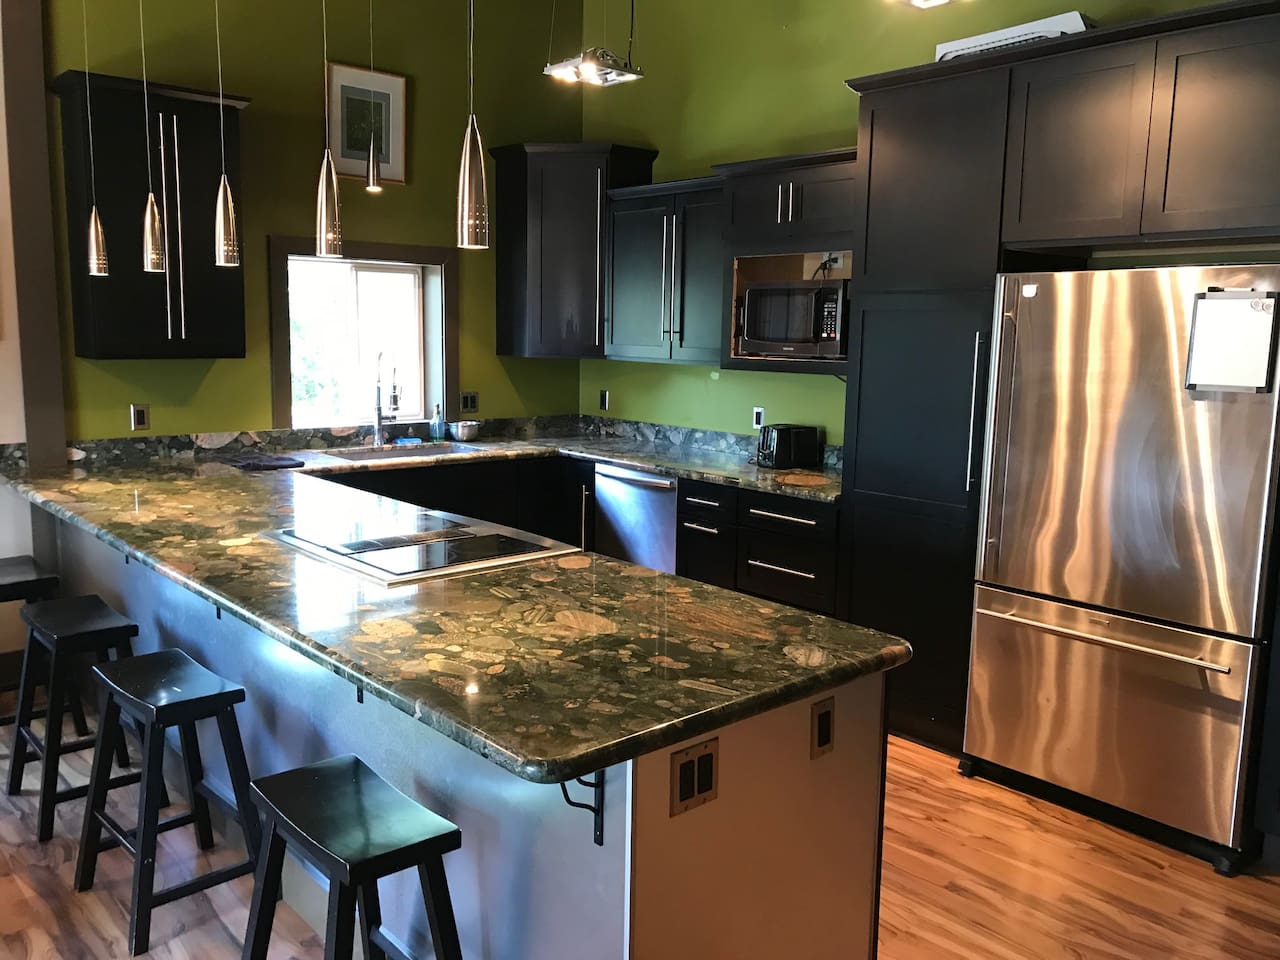 Kitchen - large kitchen with beautiful stone counters, commercial appliances